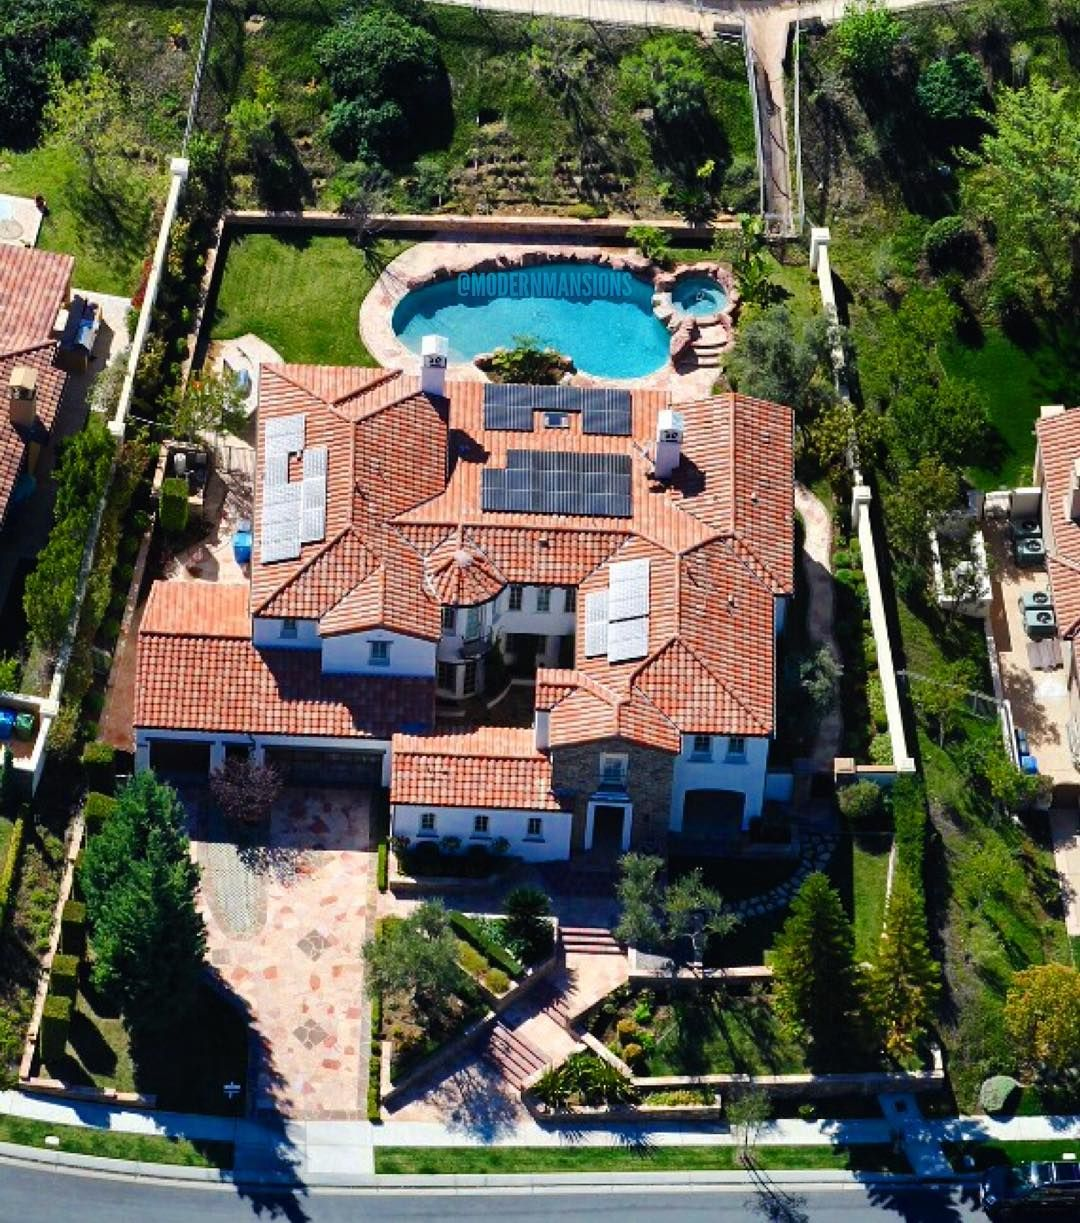 """Jenner House Calabasas: """"@kyliejenner's $2,700,000 Mansion In Calabasas That She"""